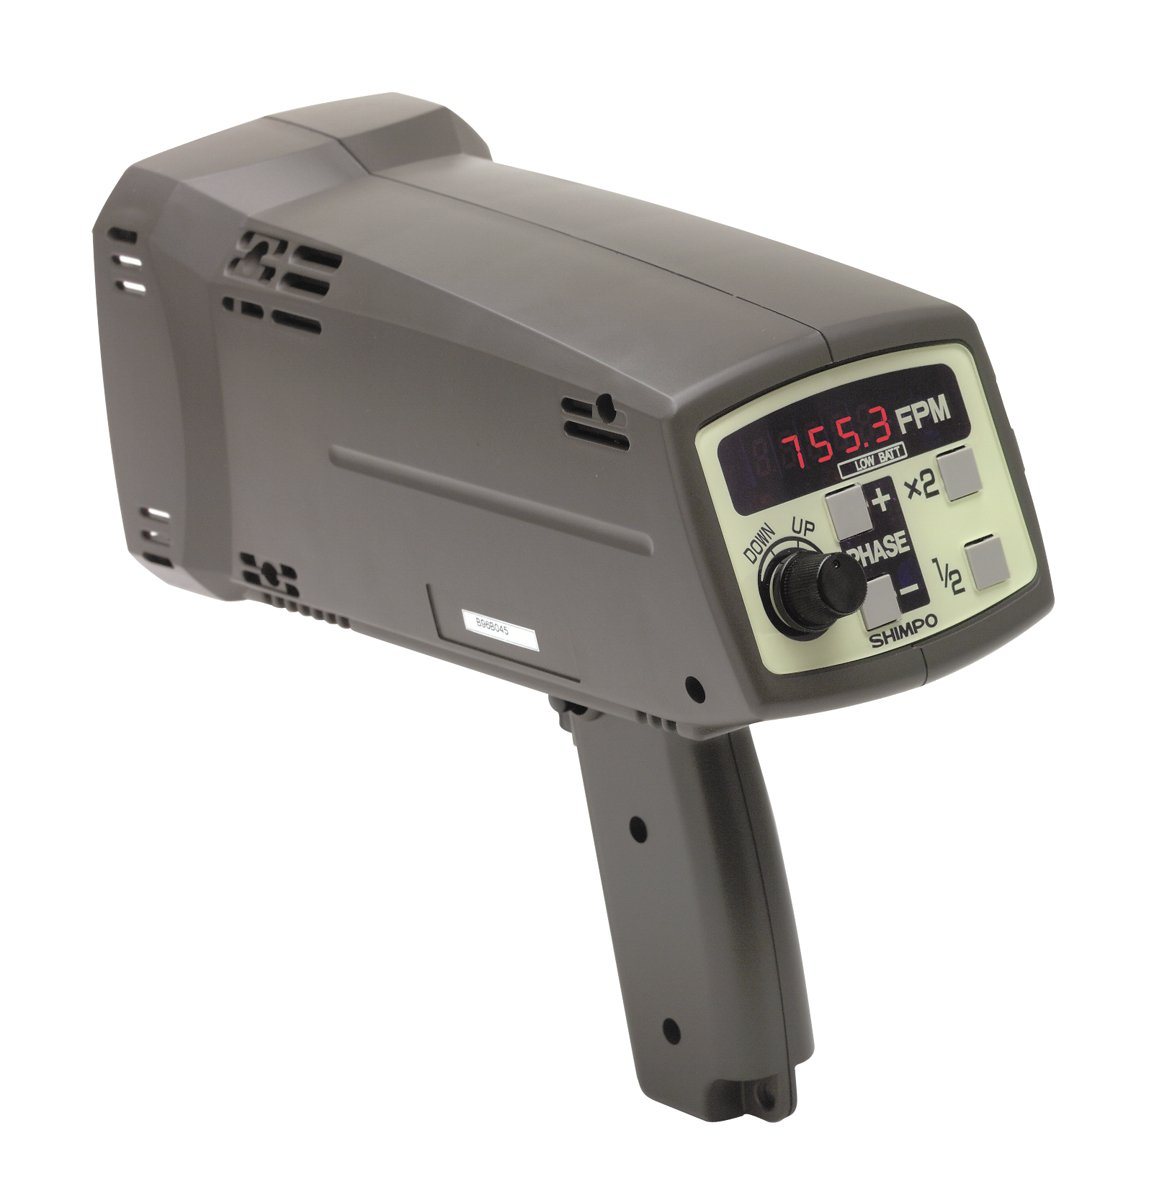 Shimpo DT-725 Internal Battery Powered Digital Stroboscope, 115V AC Charger, +/- 0.02 percent Accuracy, 40.0 - 12500 FPM Range